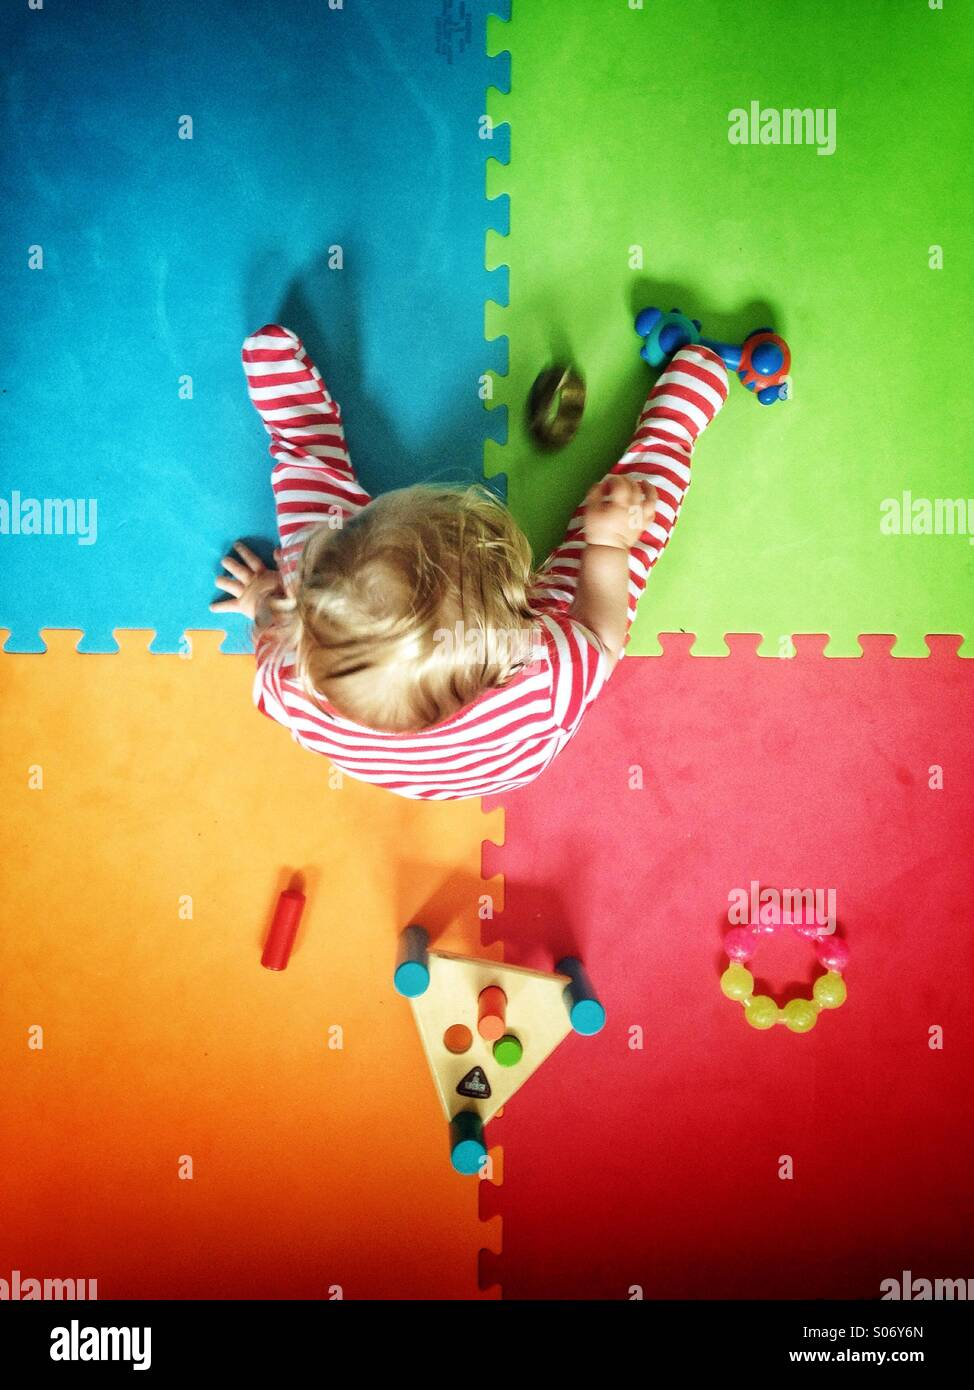 Baby playing on colourful play mat Stock Photo